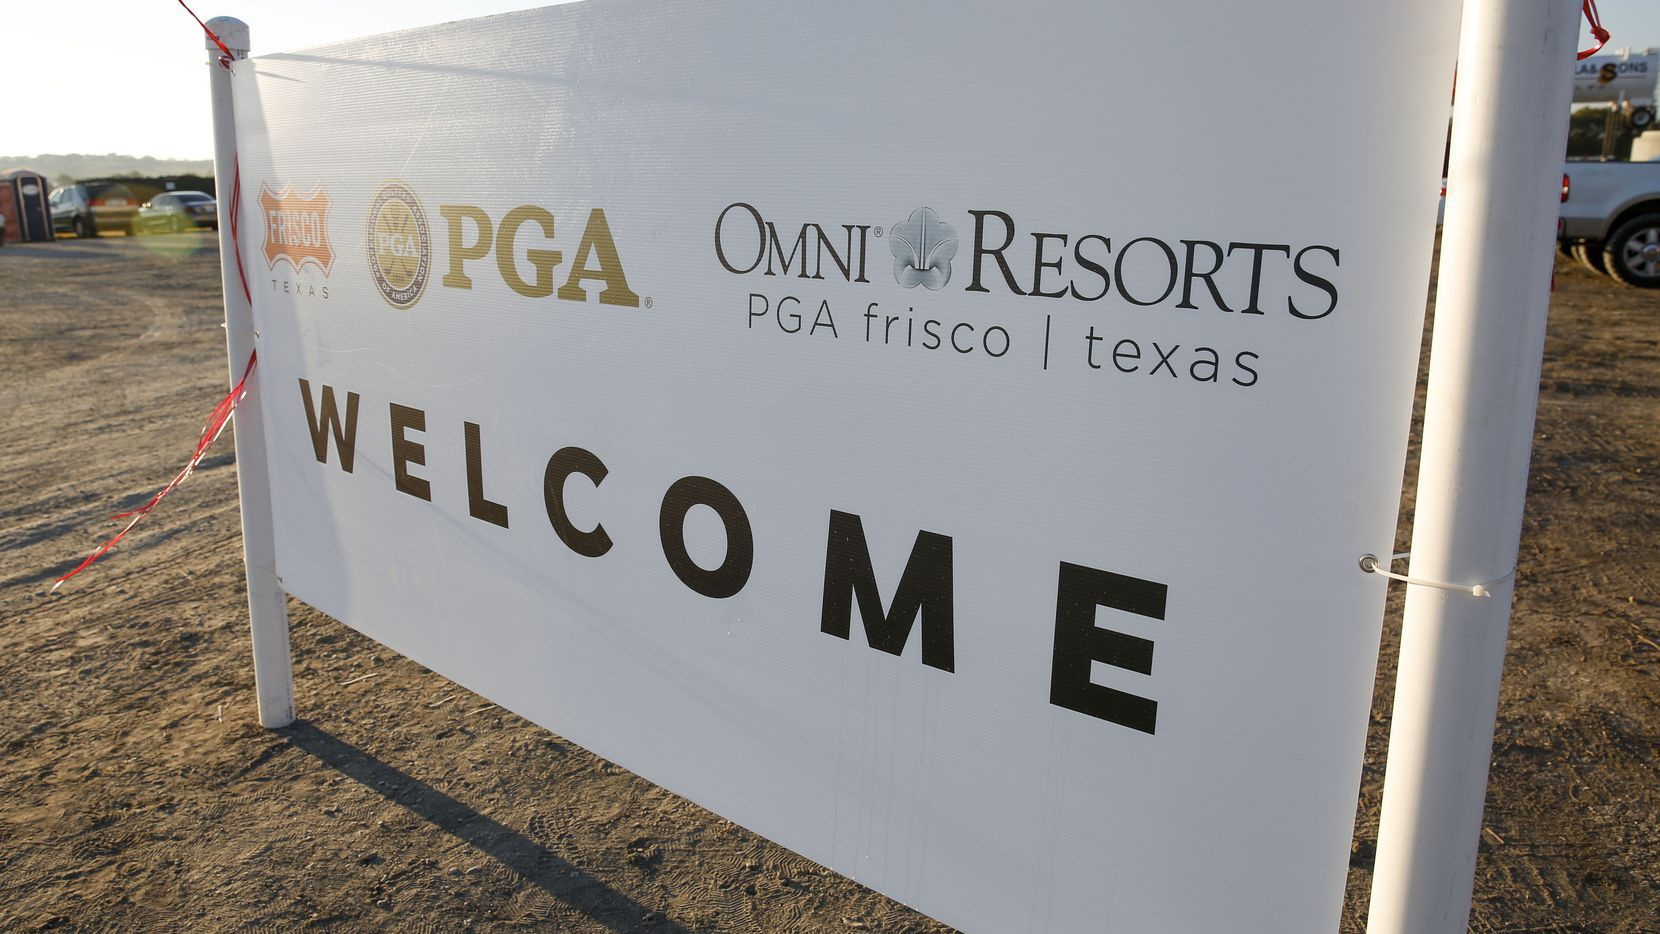 The more than 30-acre hotel and resort project is planned south of U.S. 380 at Legacy Drive.